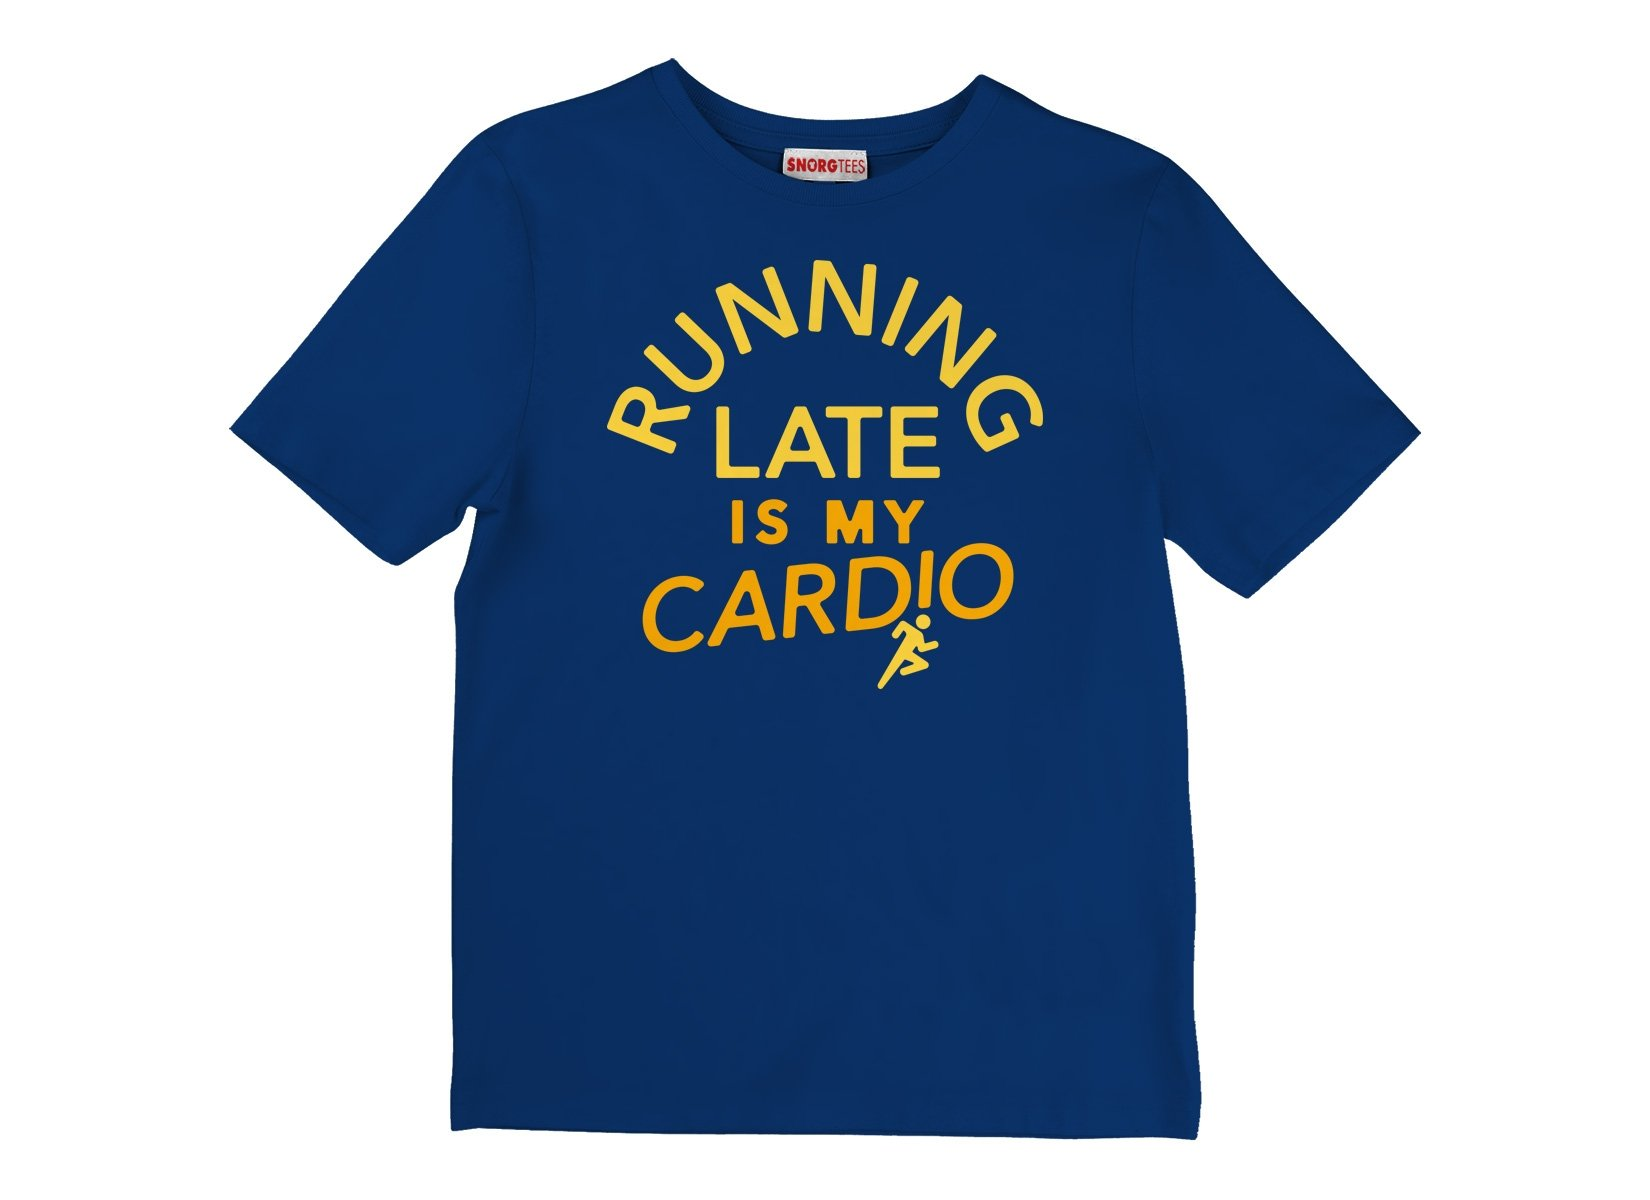 Running Late Is My Cardio on Kids T-Shirt